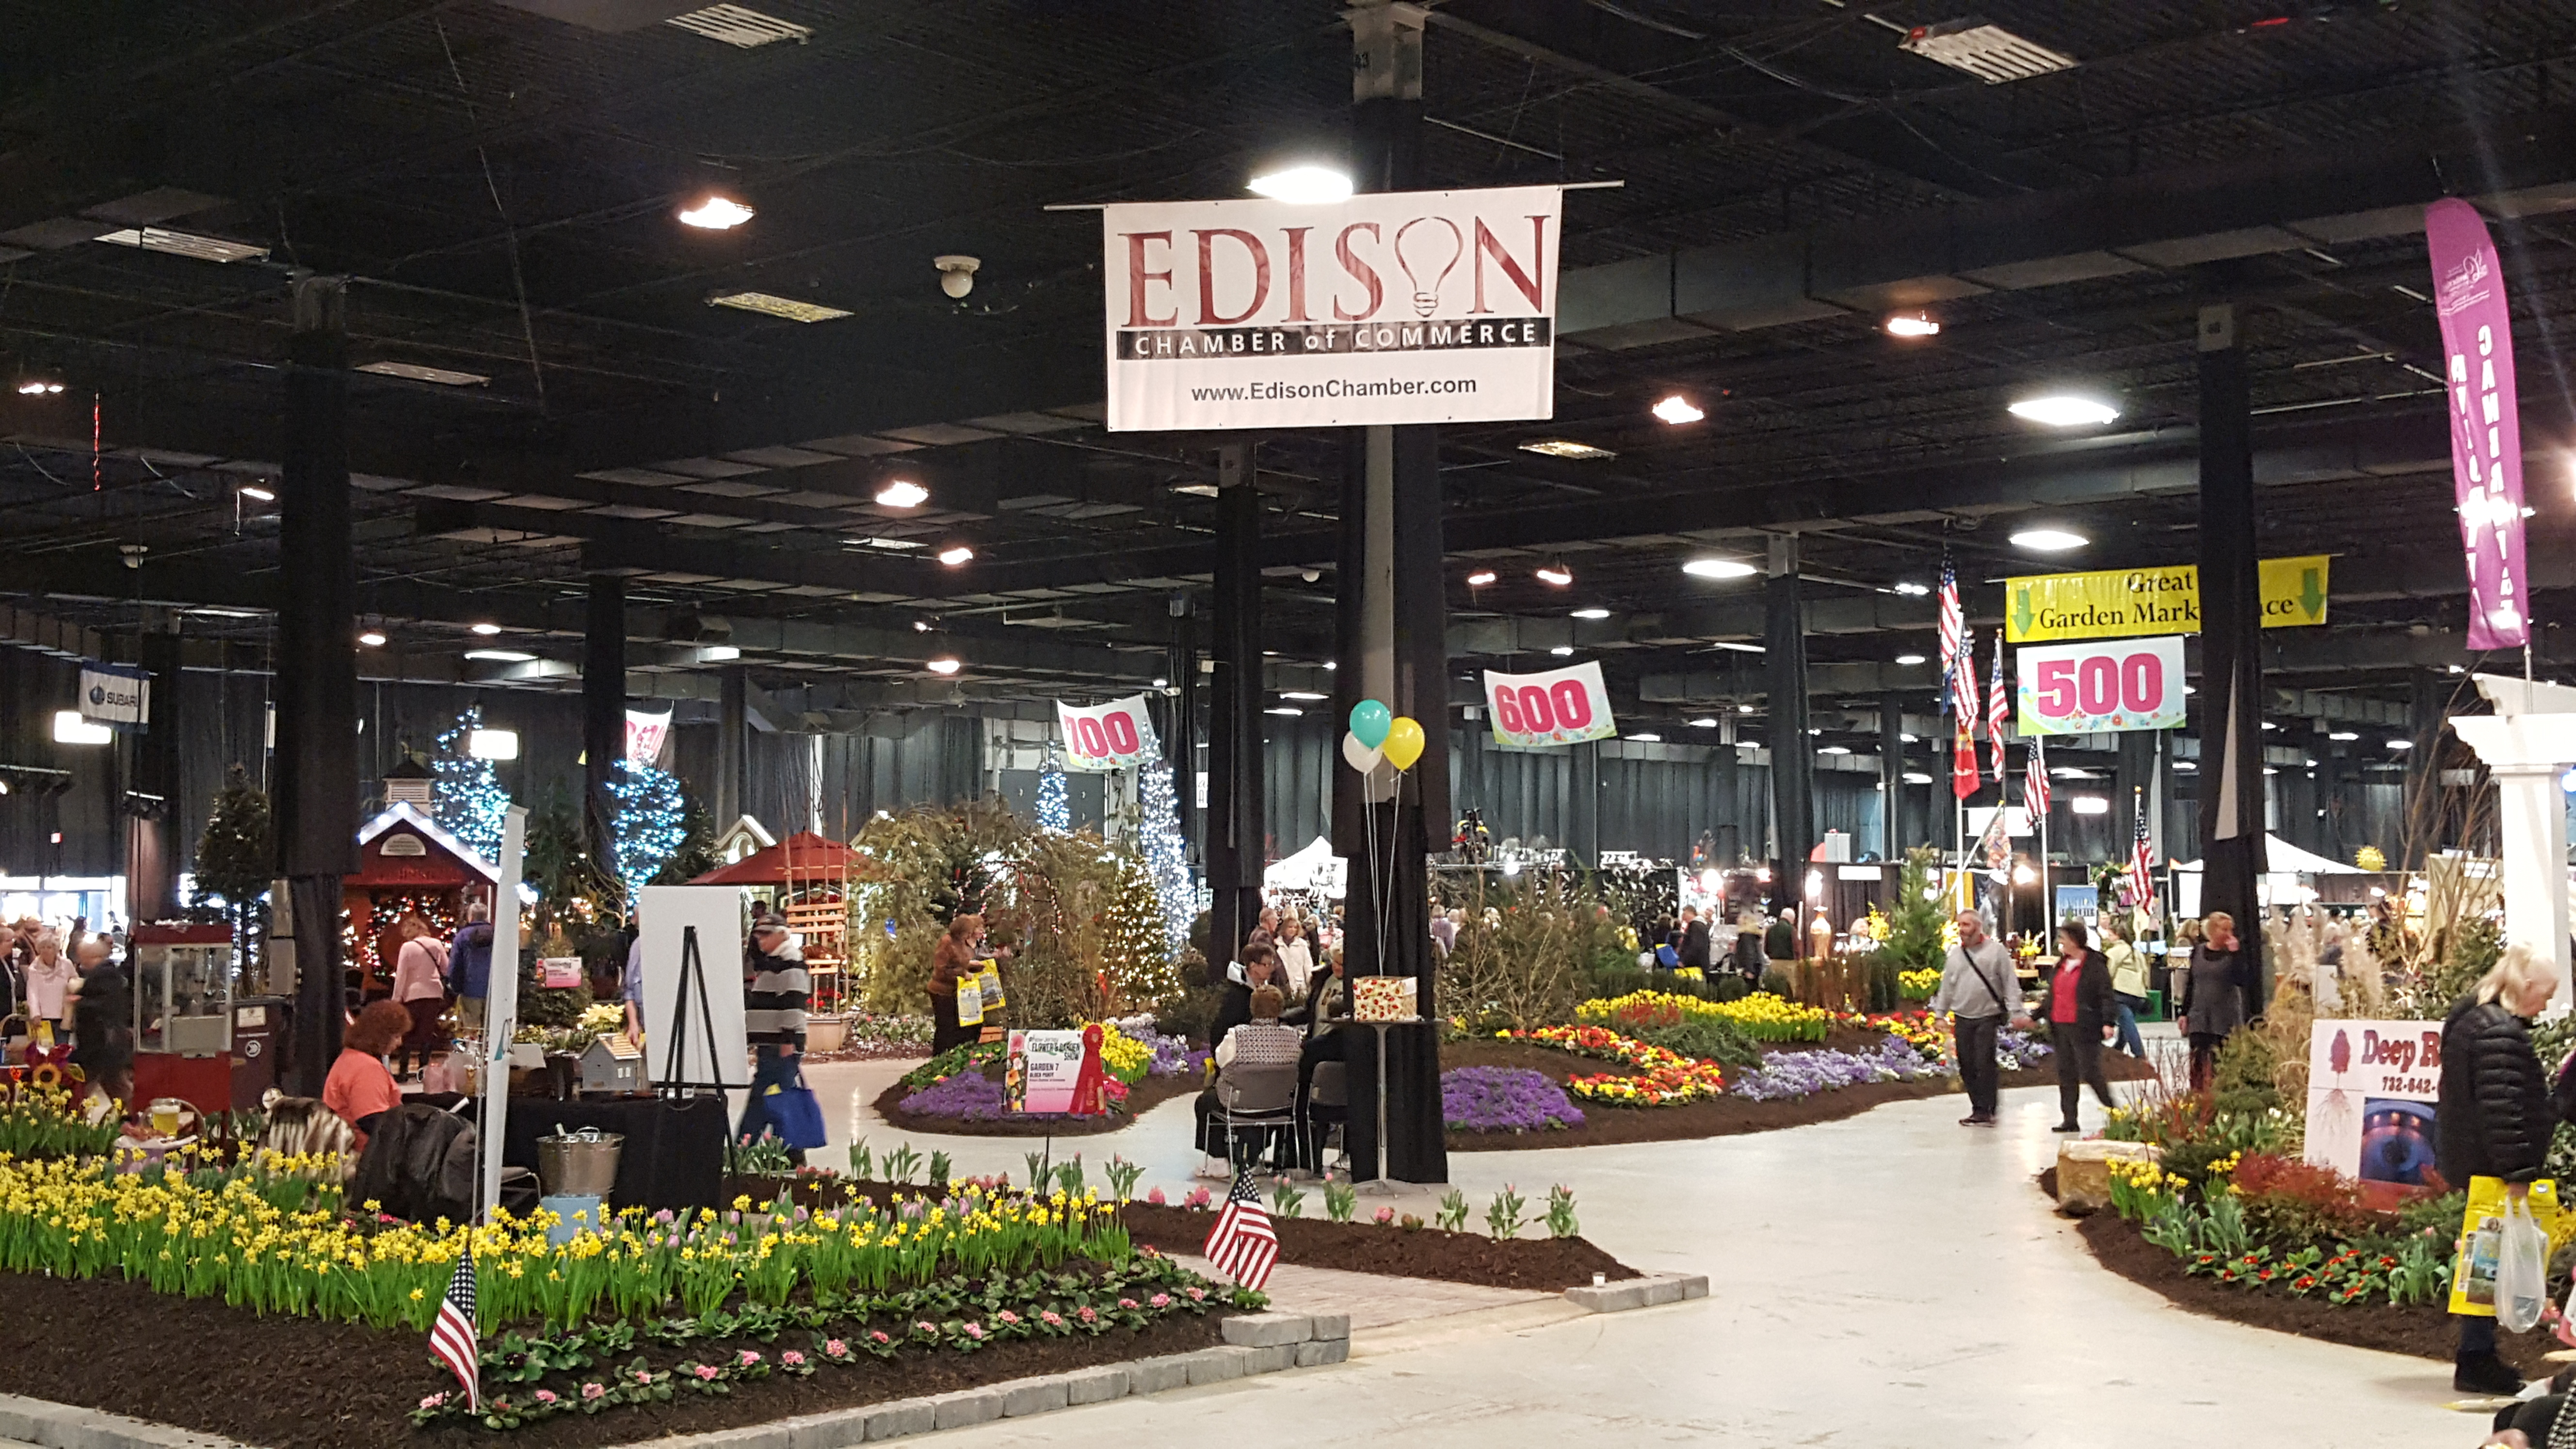 The Edison Chamber at the Annual Flower Show